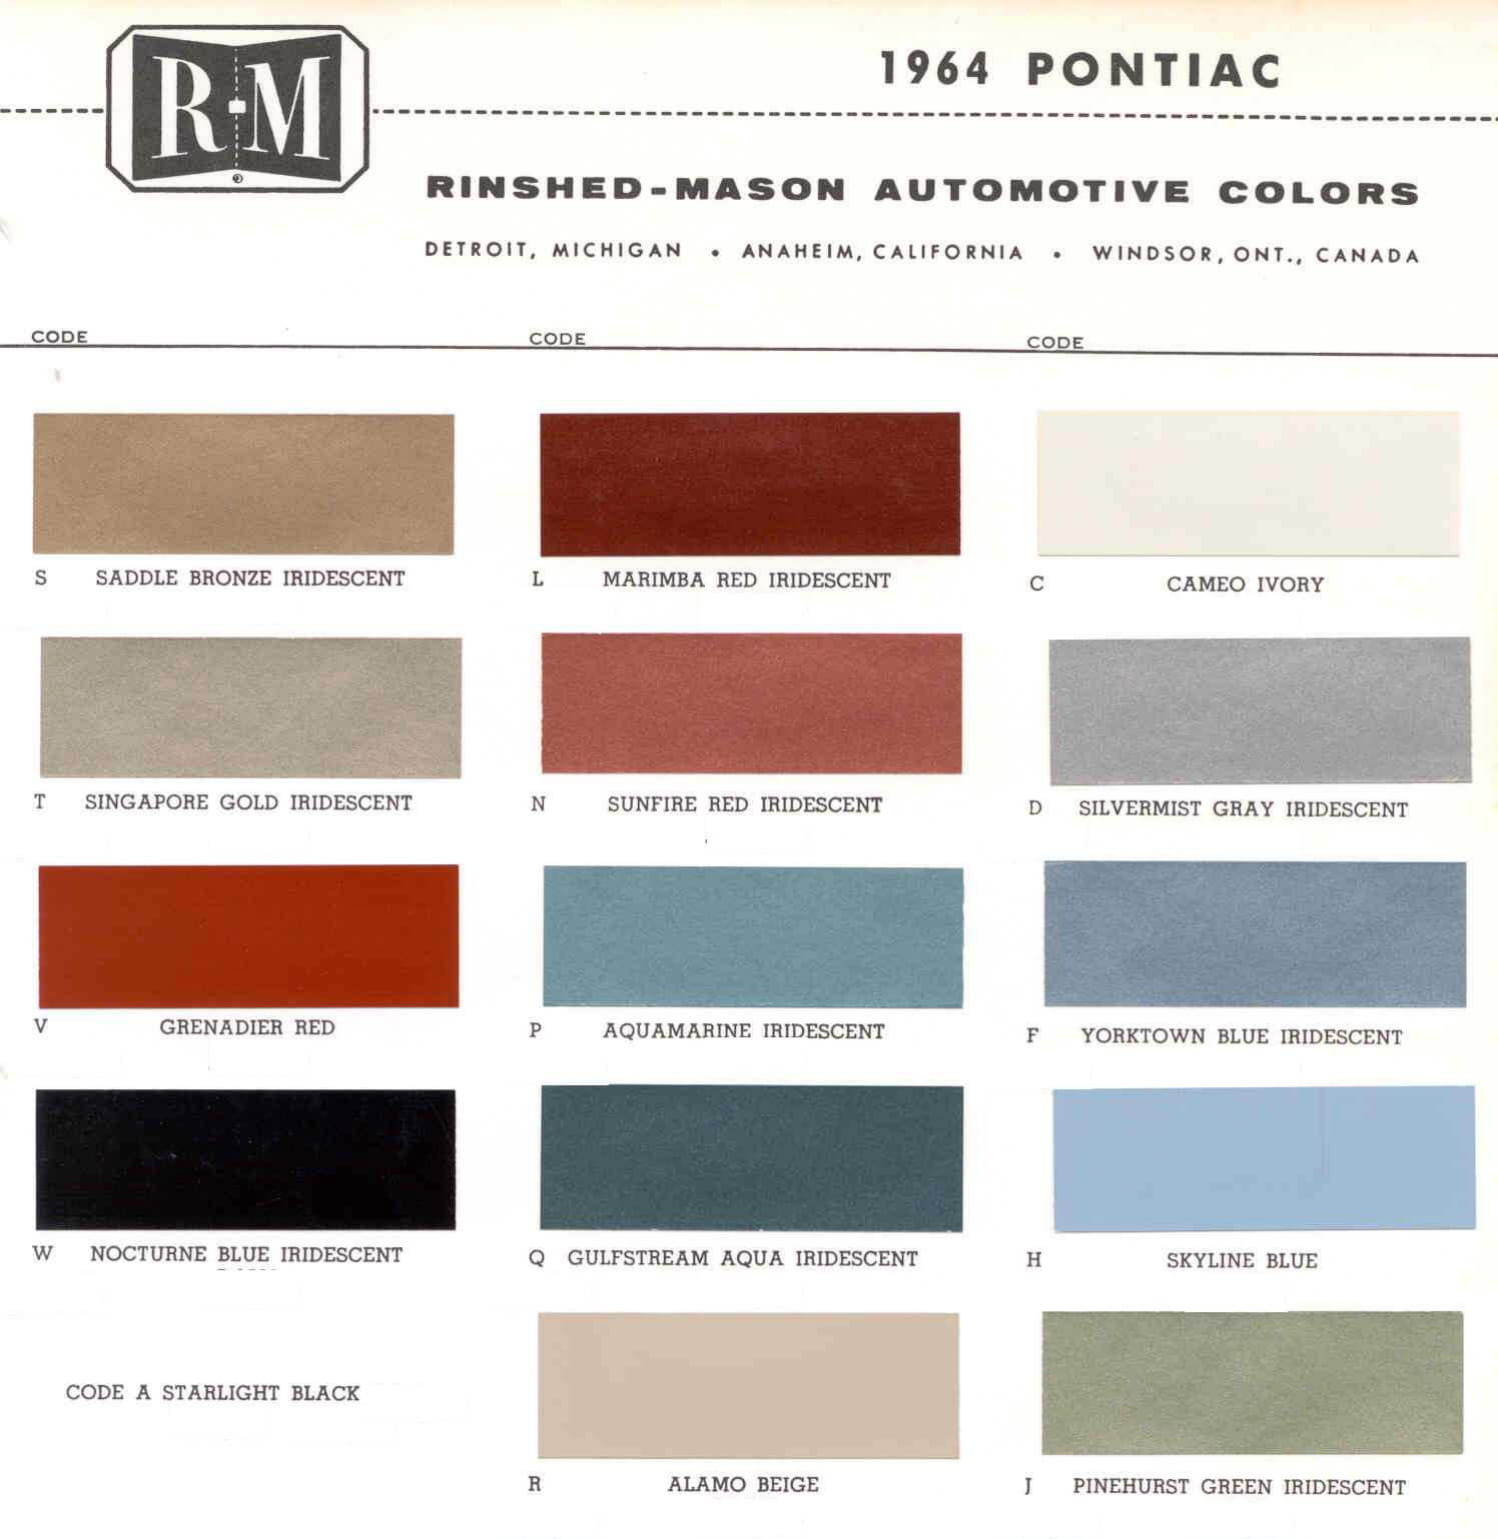 Color Code and Paint Color Chart for Pontiac in 1964